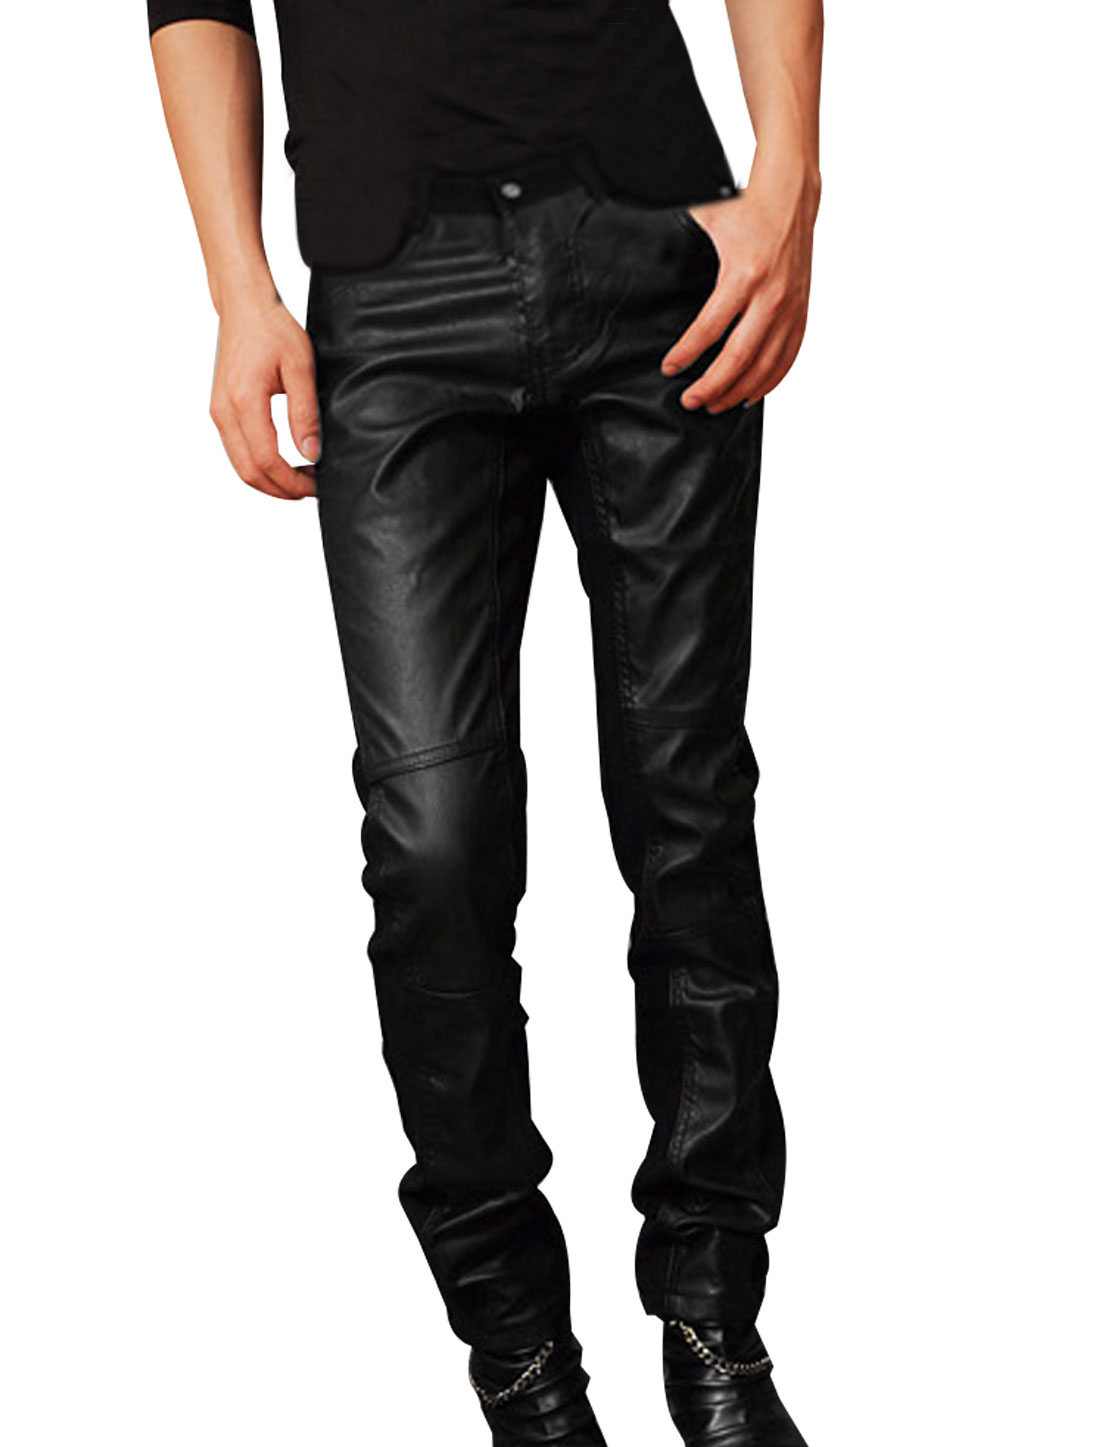 Unique Bargains Mens Fashion Zip Fly Button Closure Belt Loop Detail Casual Pants Black W33 at Sears.com